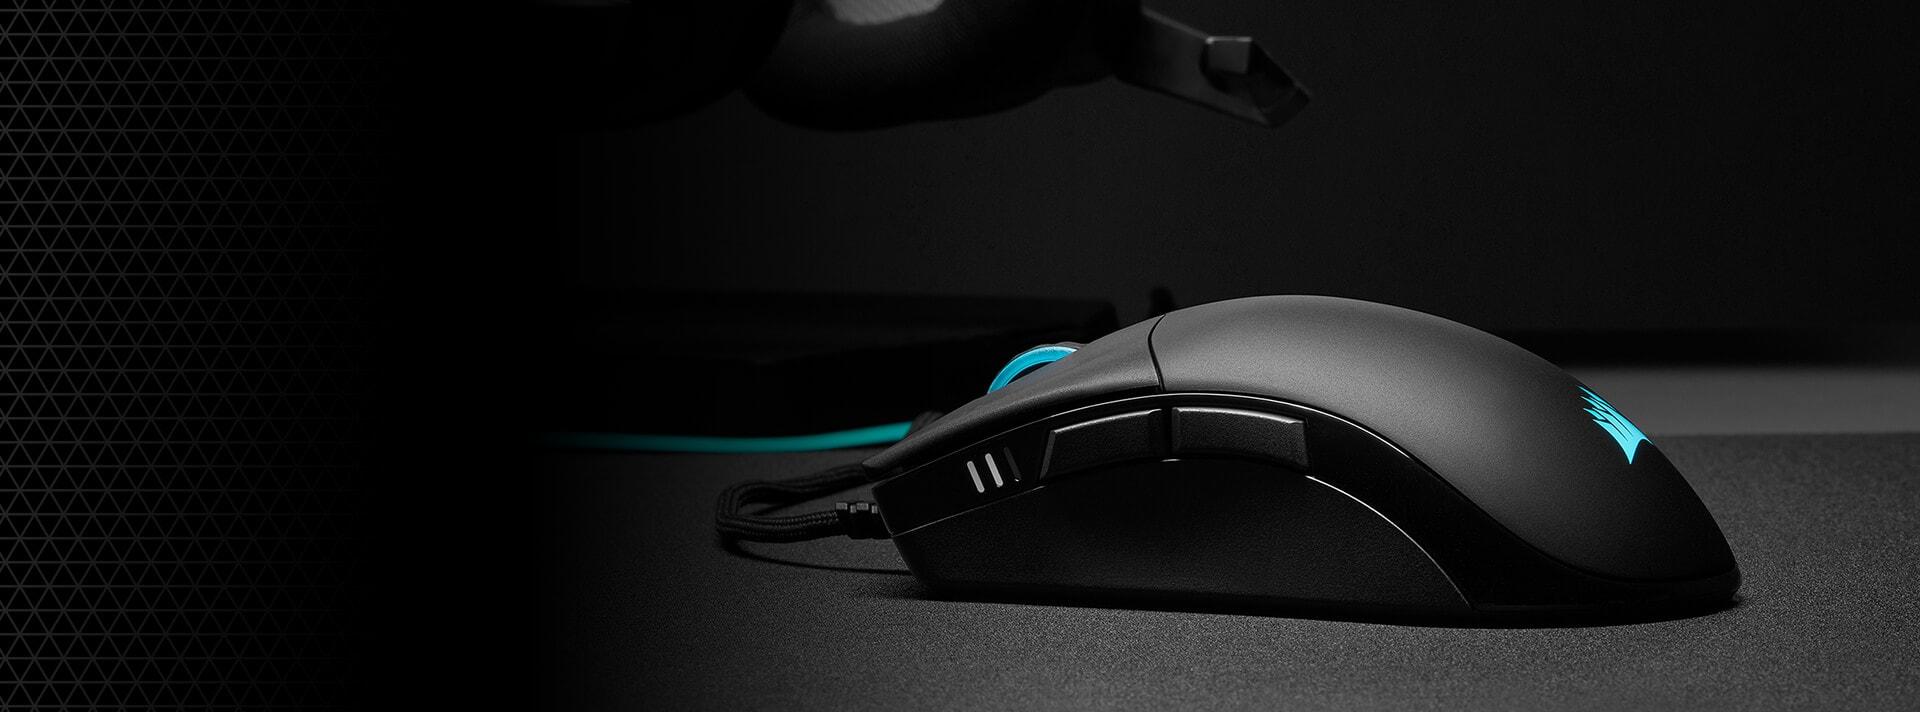 Mouse gaming ottico CORSAIR SABRE RGB PRO CHAMPION SERIES